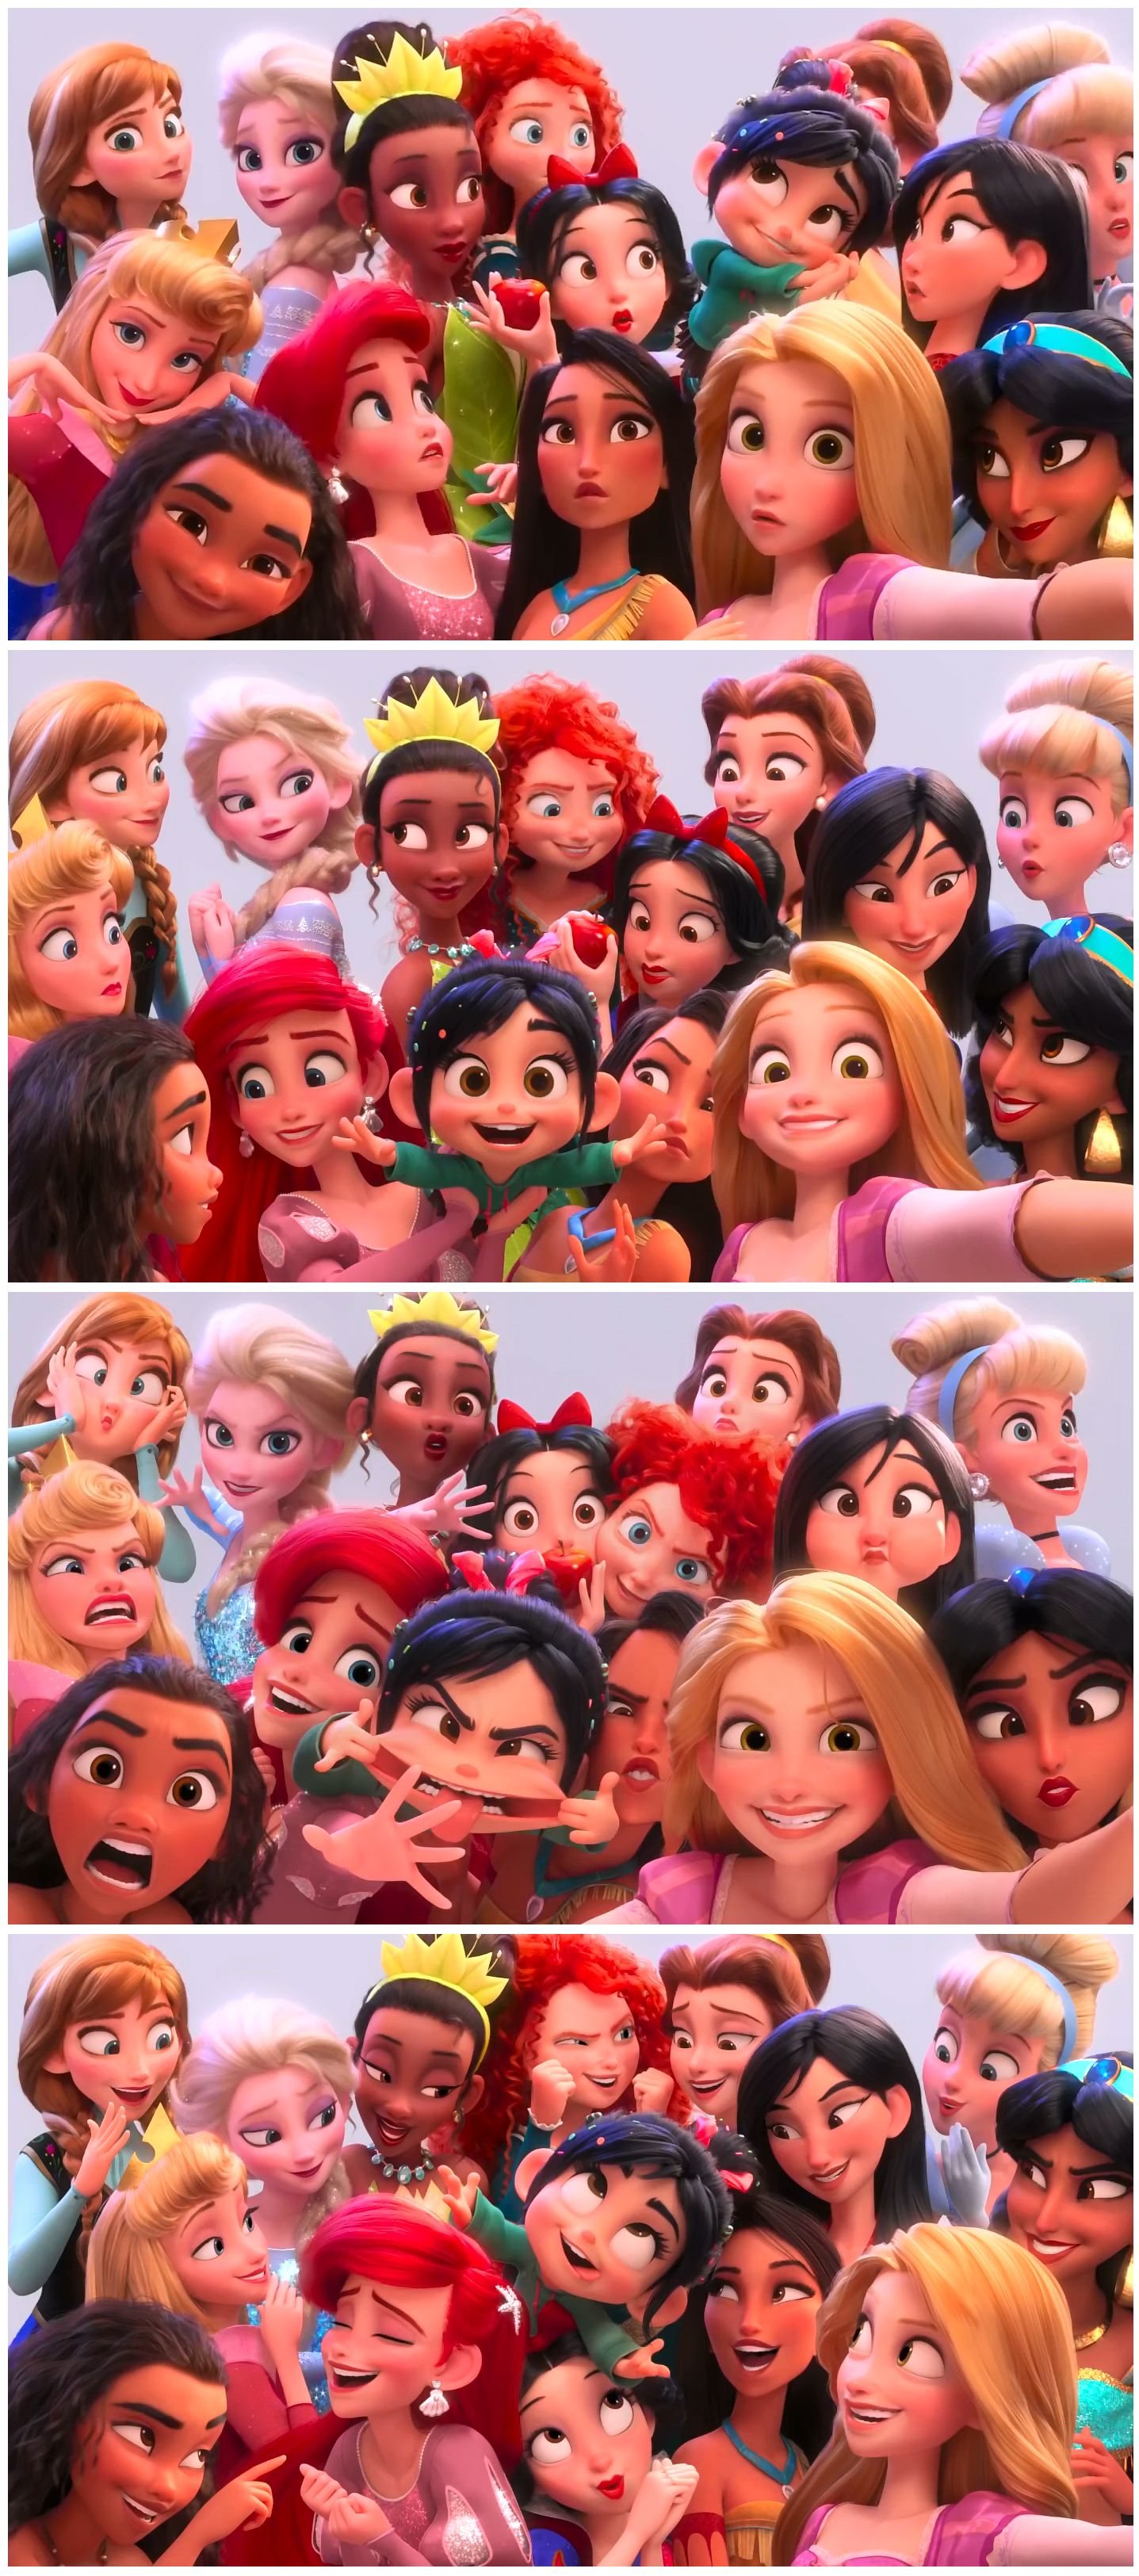 All Disney Princess From Wreck It Ralph 2 Trailer Disney Wreck